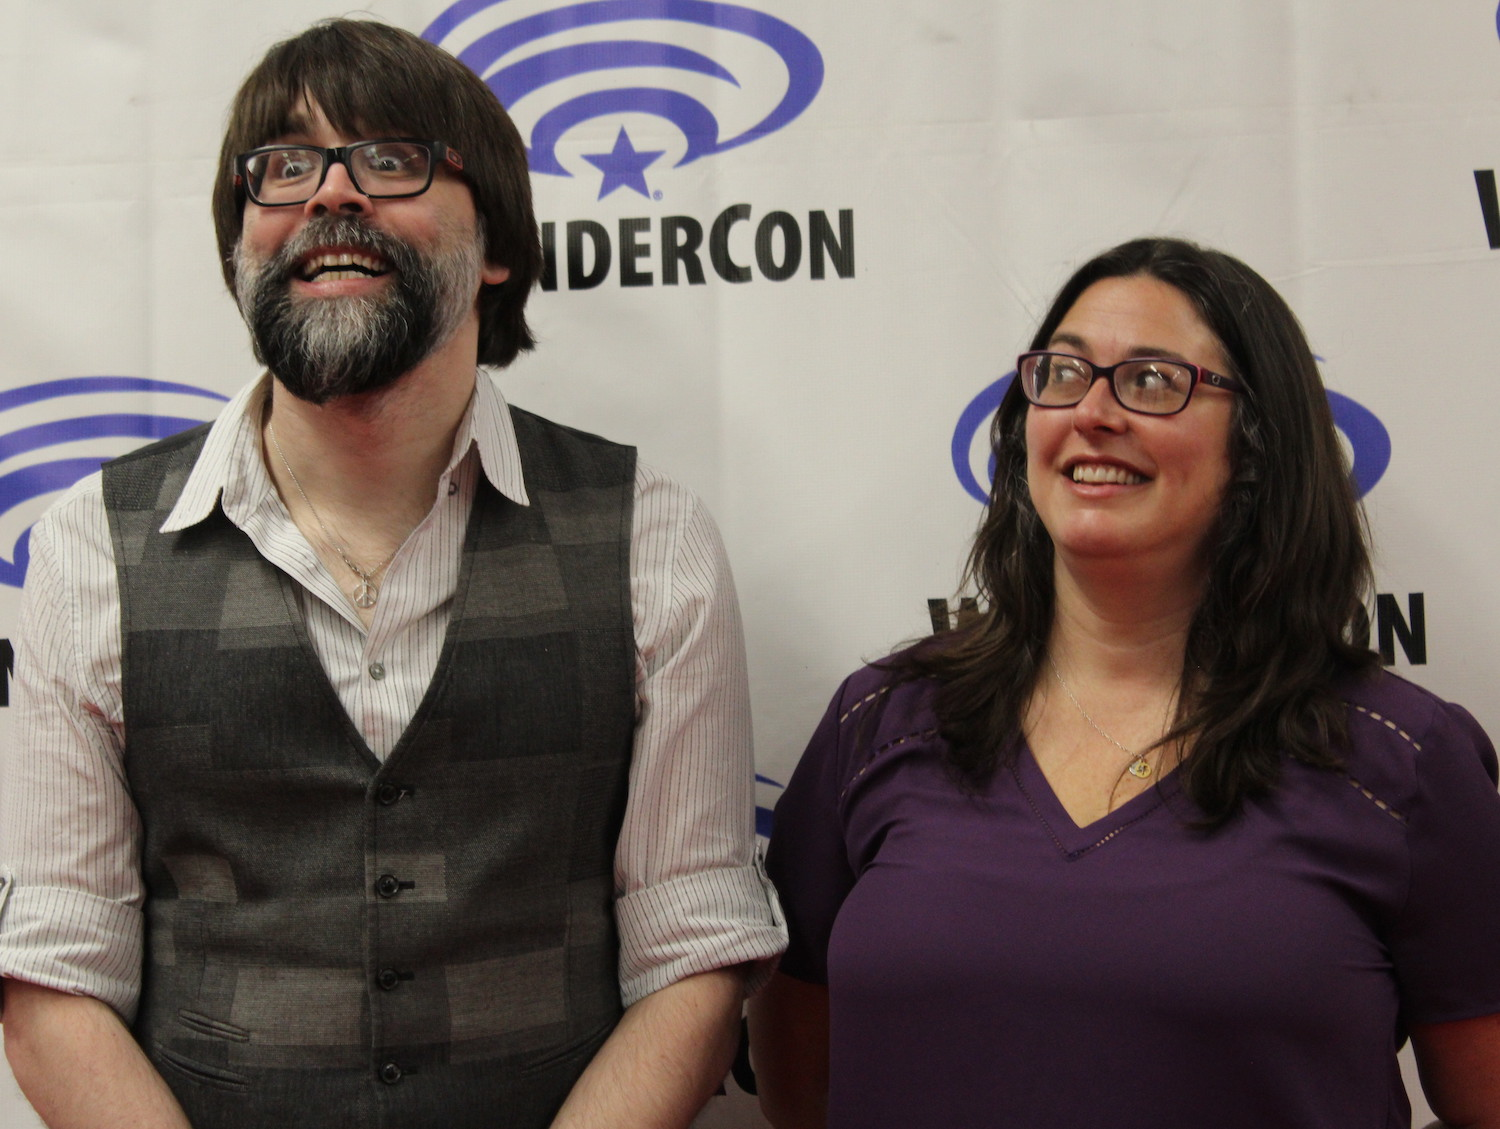 Joe Hill and Jami O'Brien